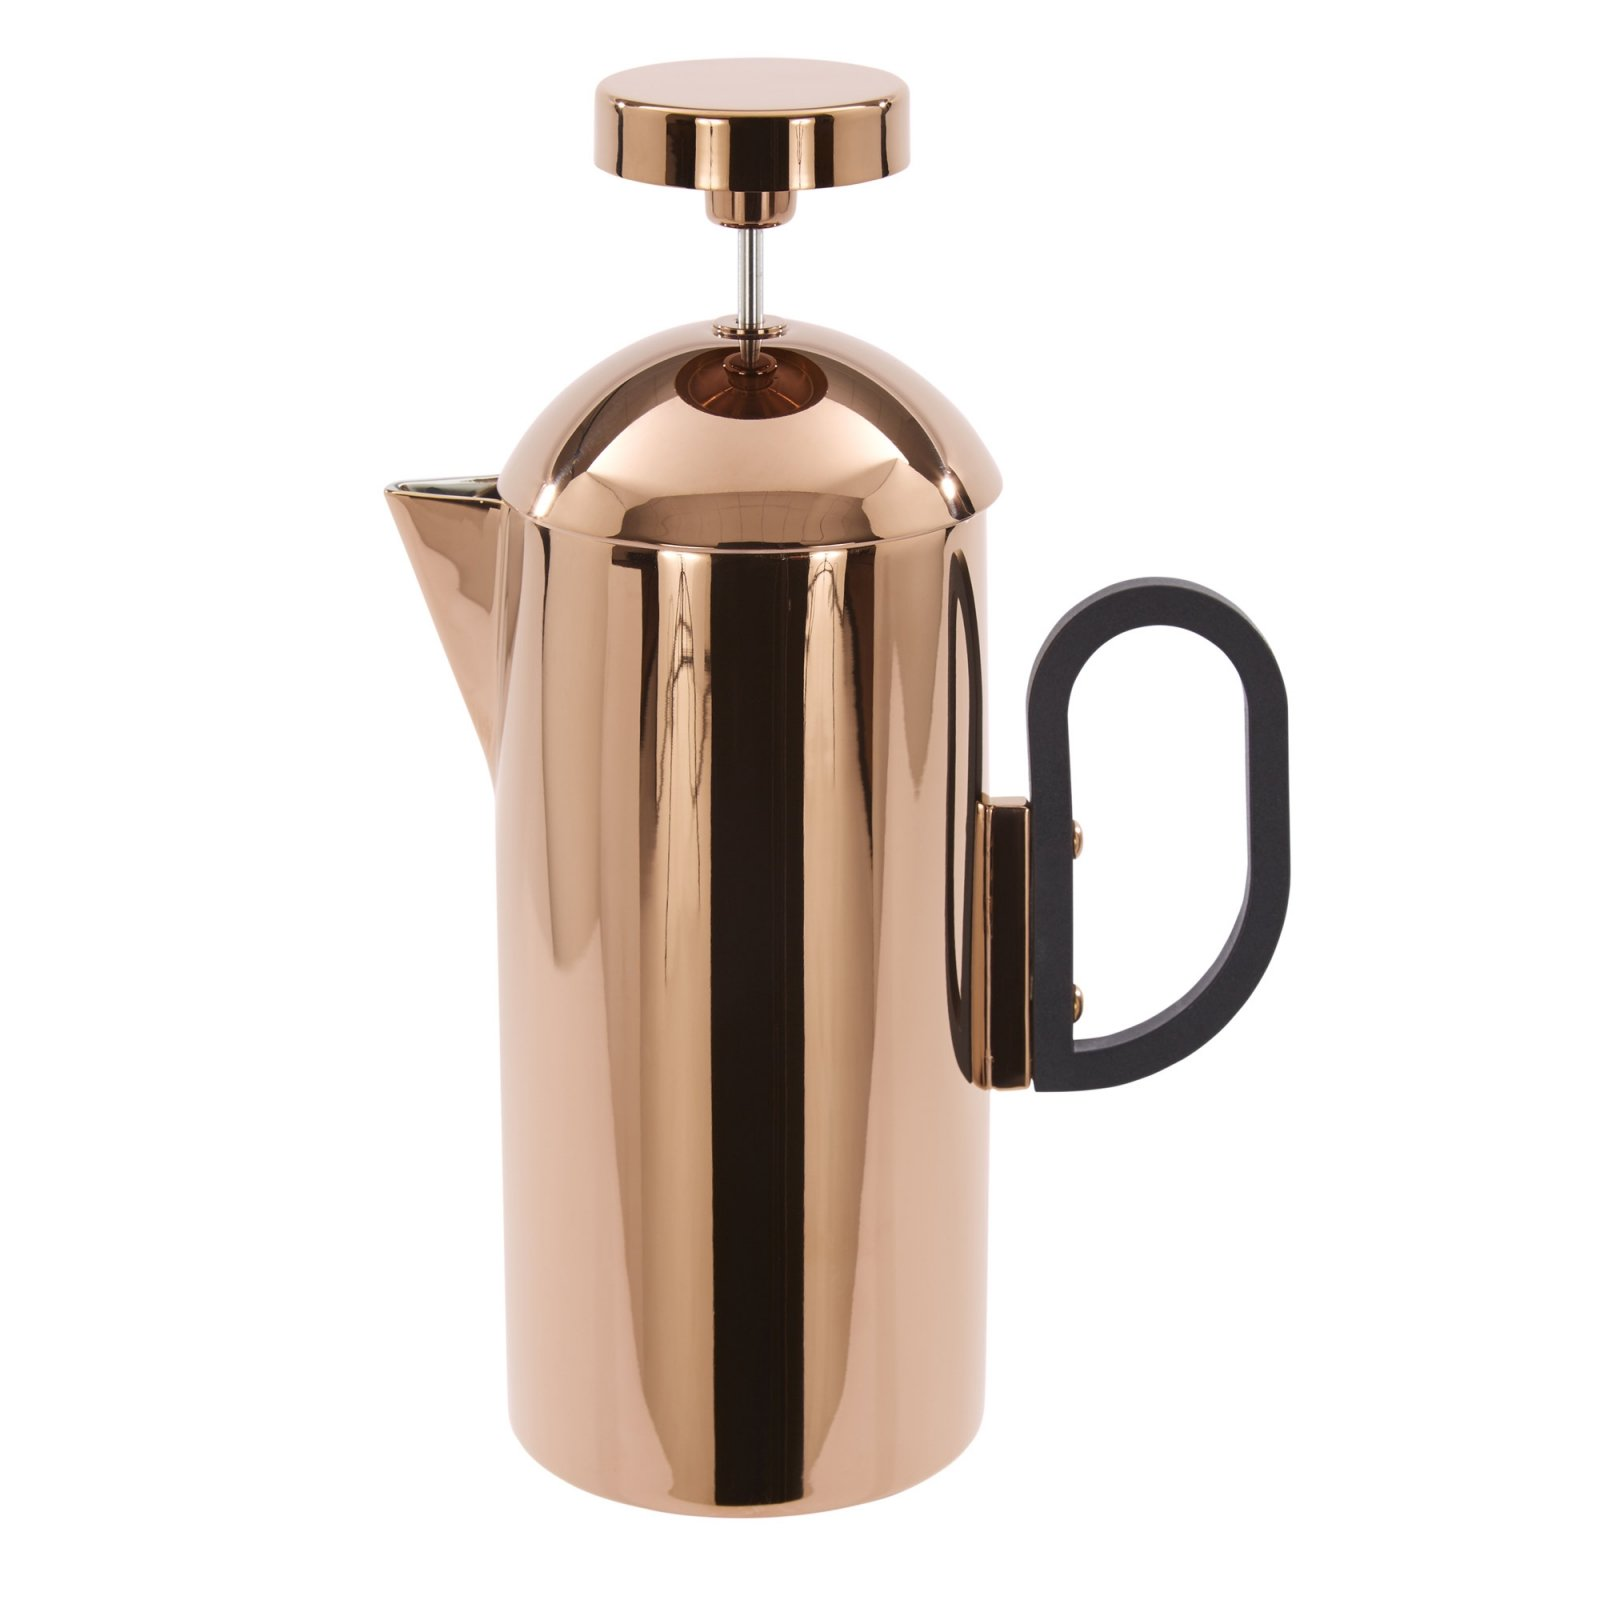 brew-cafetiere-4